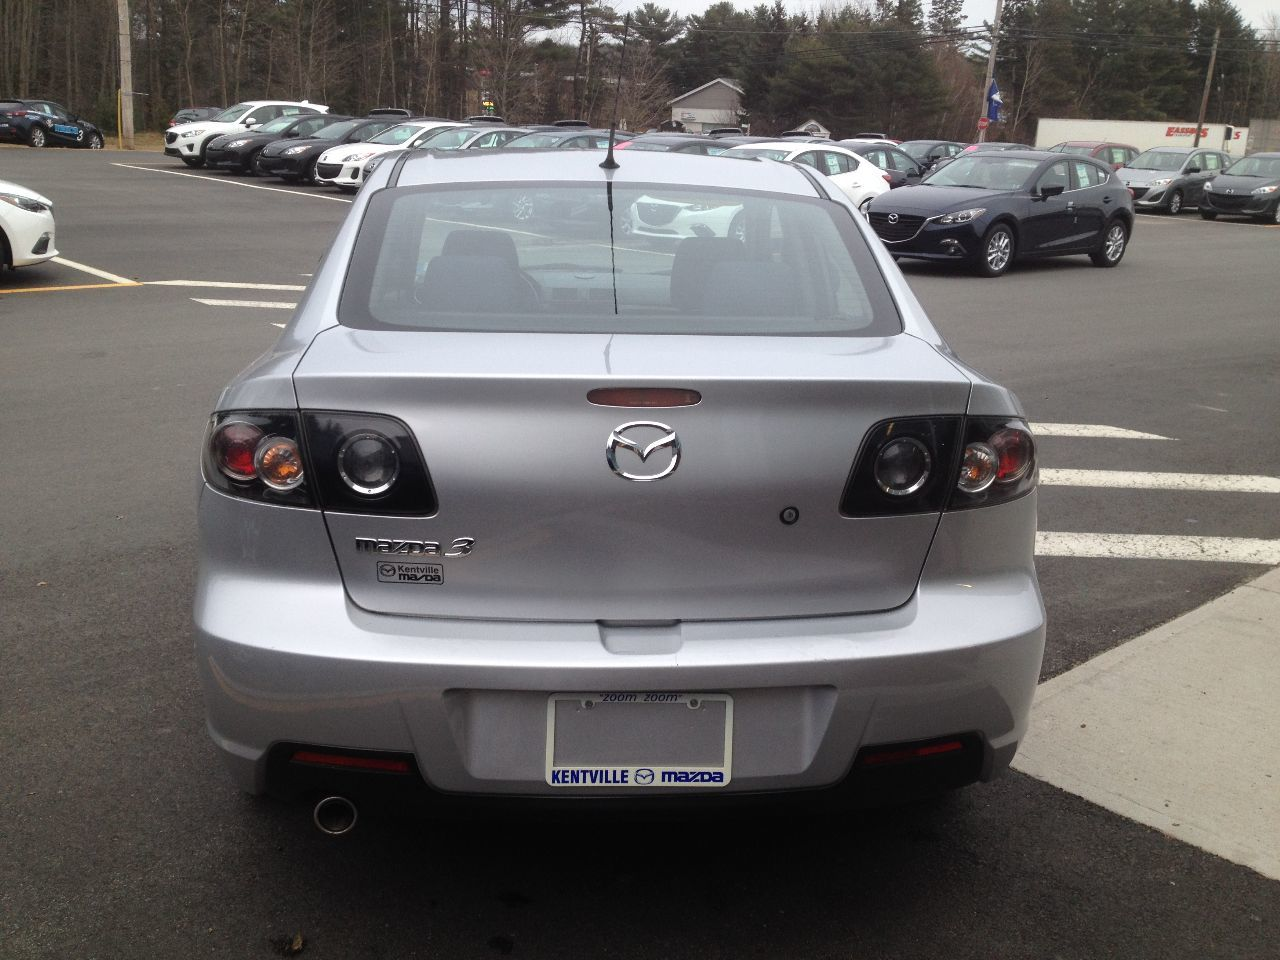 used 2008 mazda mazda3 in new germany used inventory lake view auto in new germany nova scotia. Black Bedroom Furniture Sets. Home Design Ideas